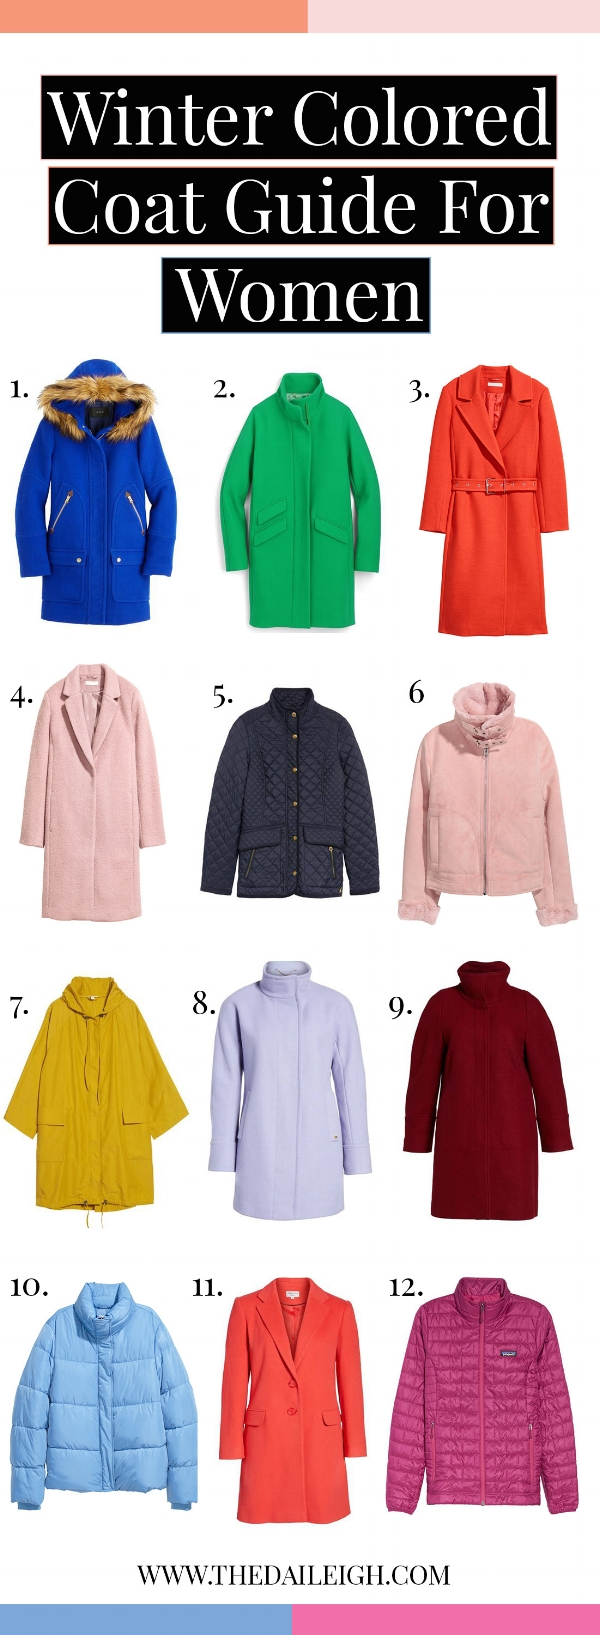 Winter Colored Coat Guide